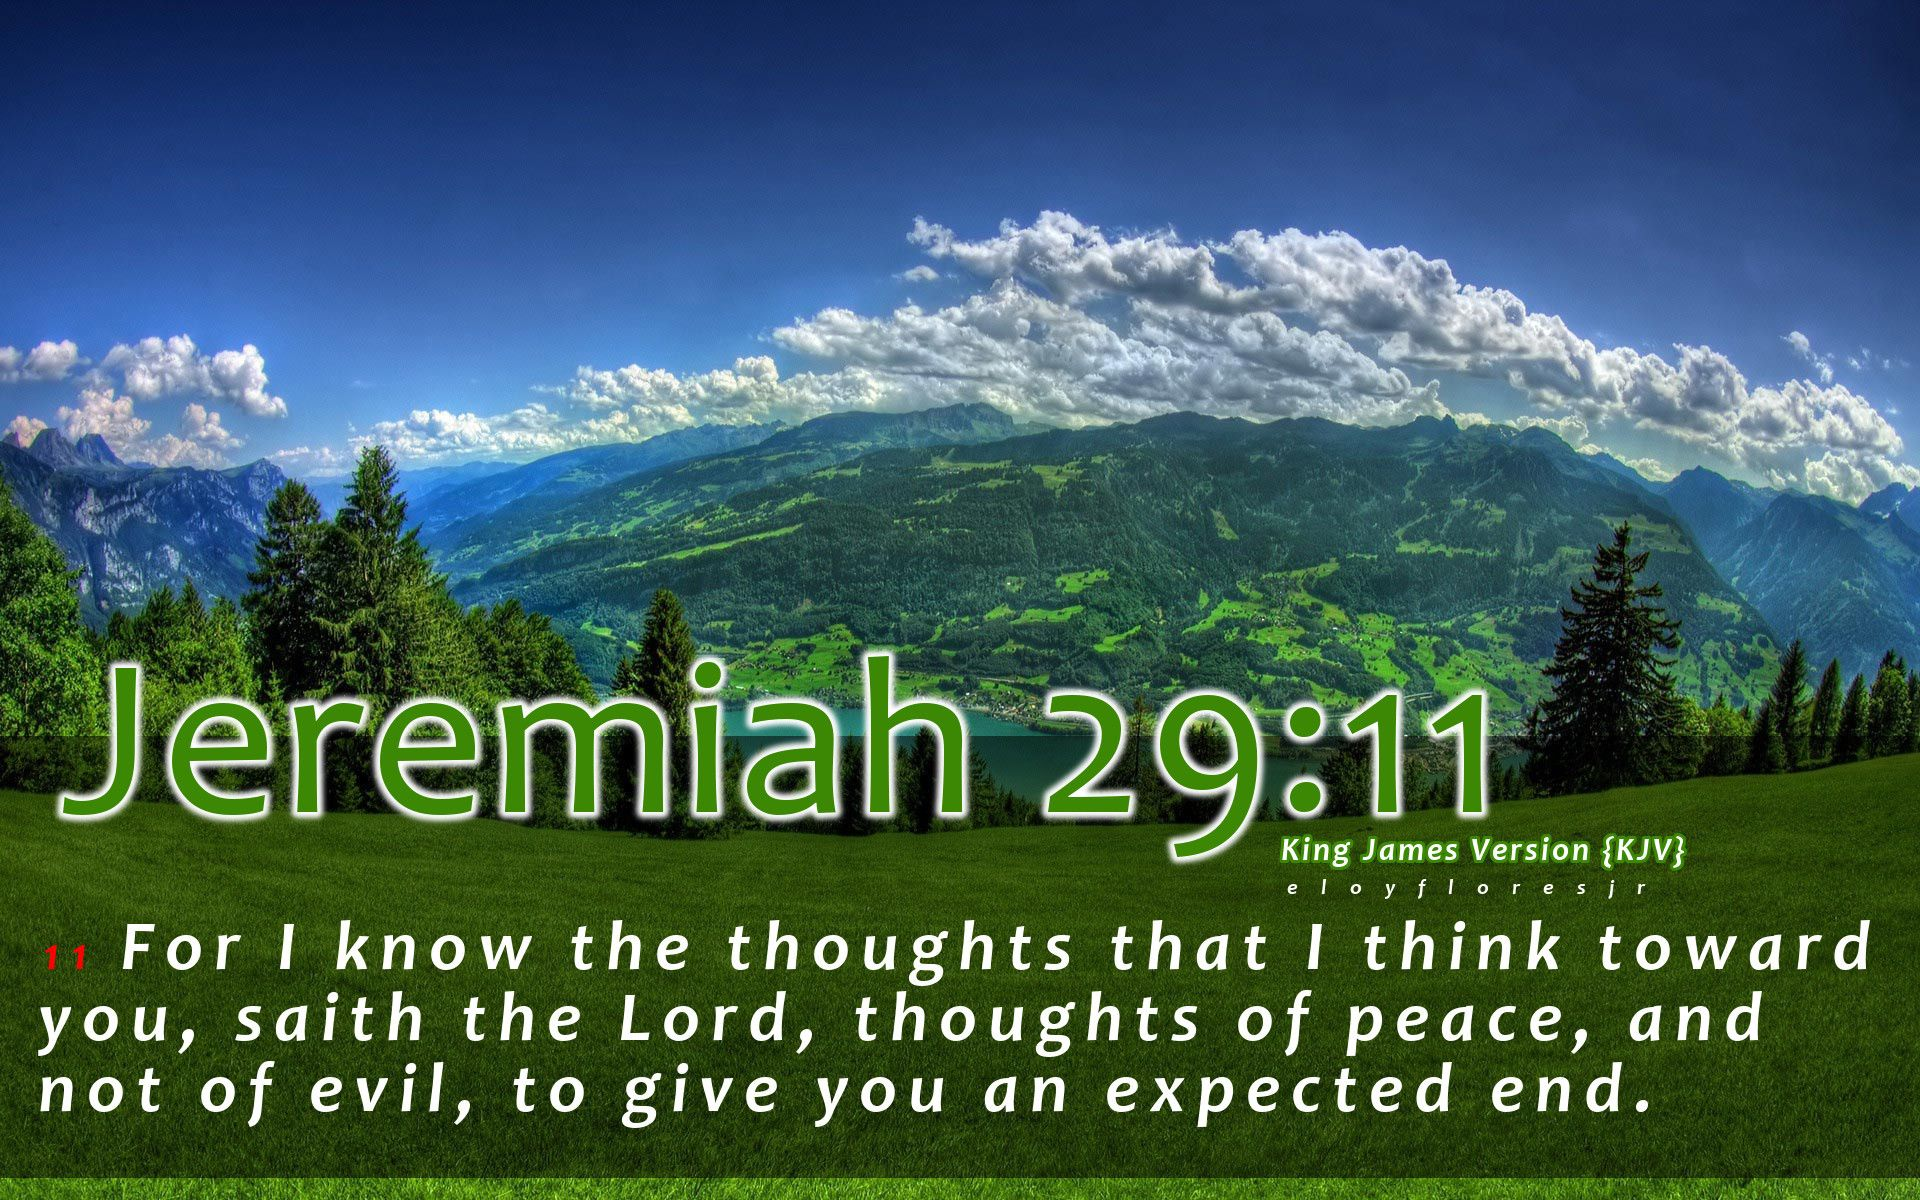 High Quality Bible Verse Wallpapers   Full HD Wallpaper Search   Page 3